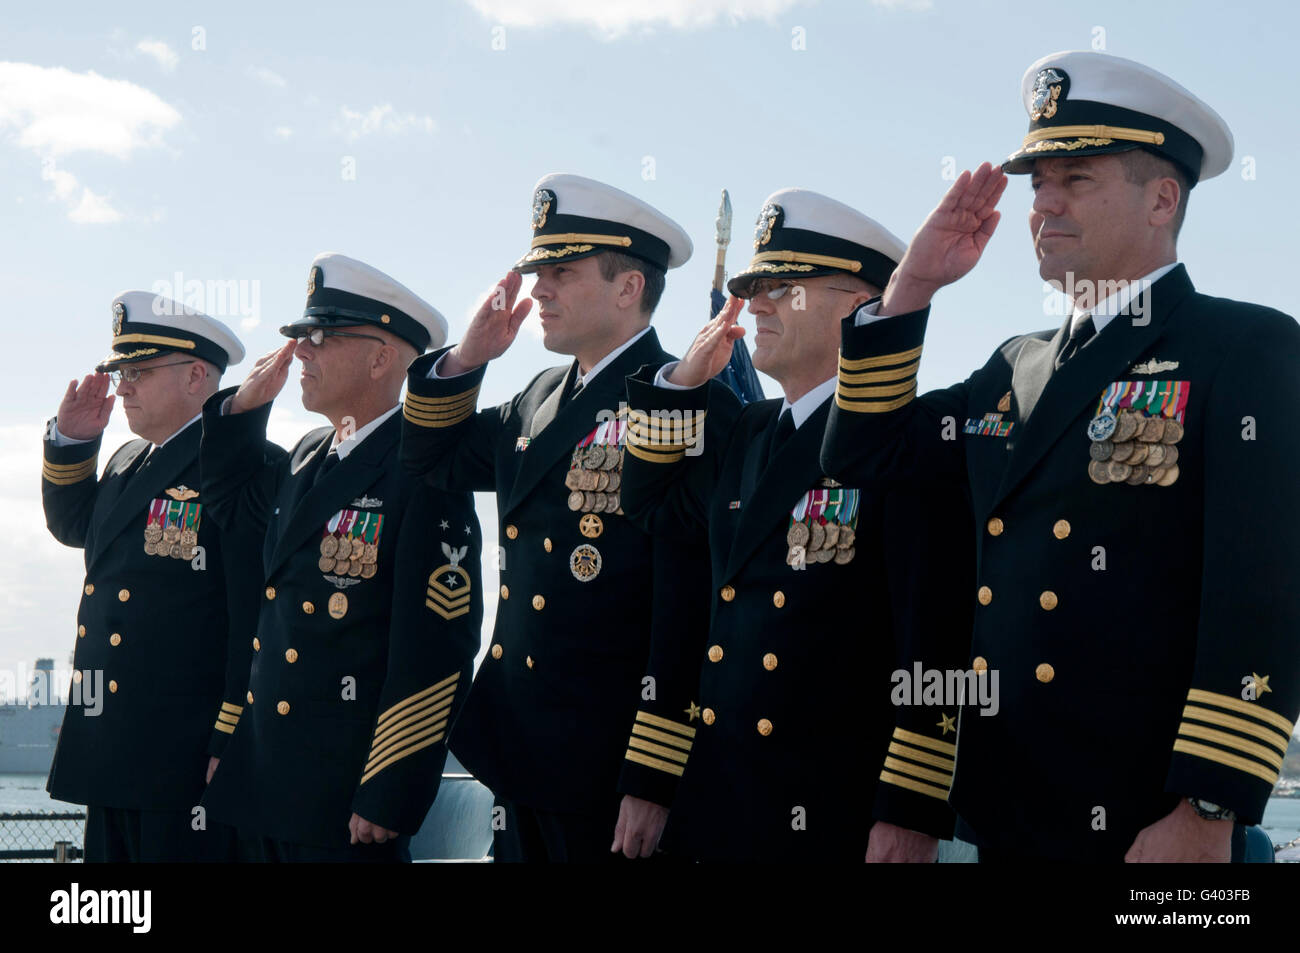 The official party salutes during a change of command ceremony. - Stock Image